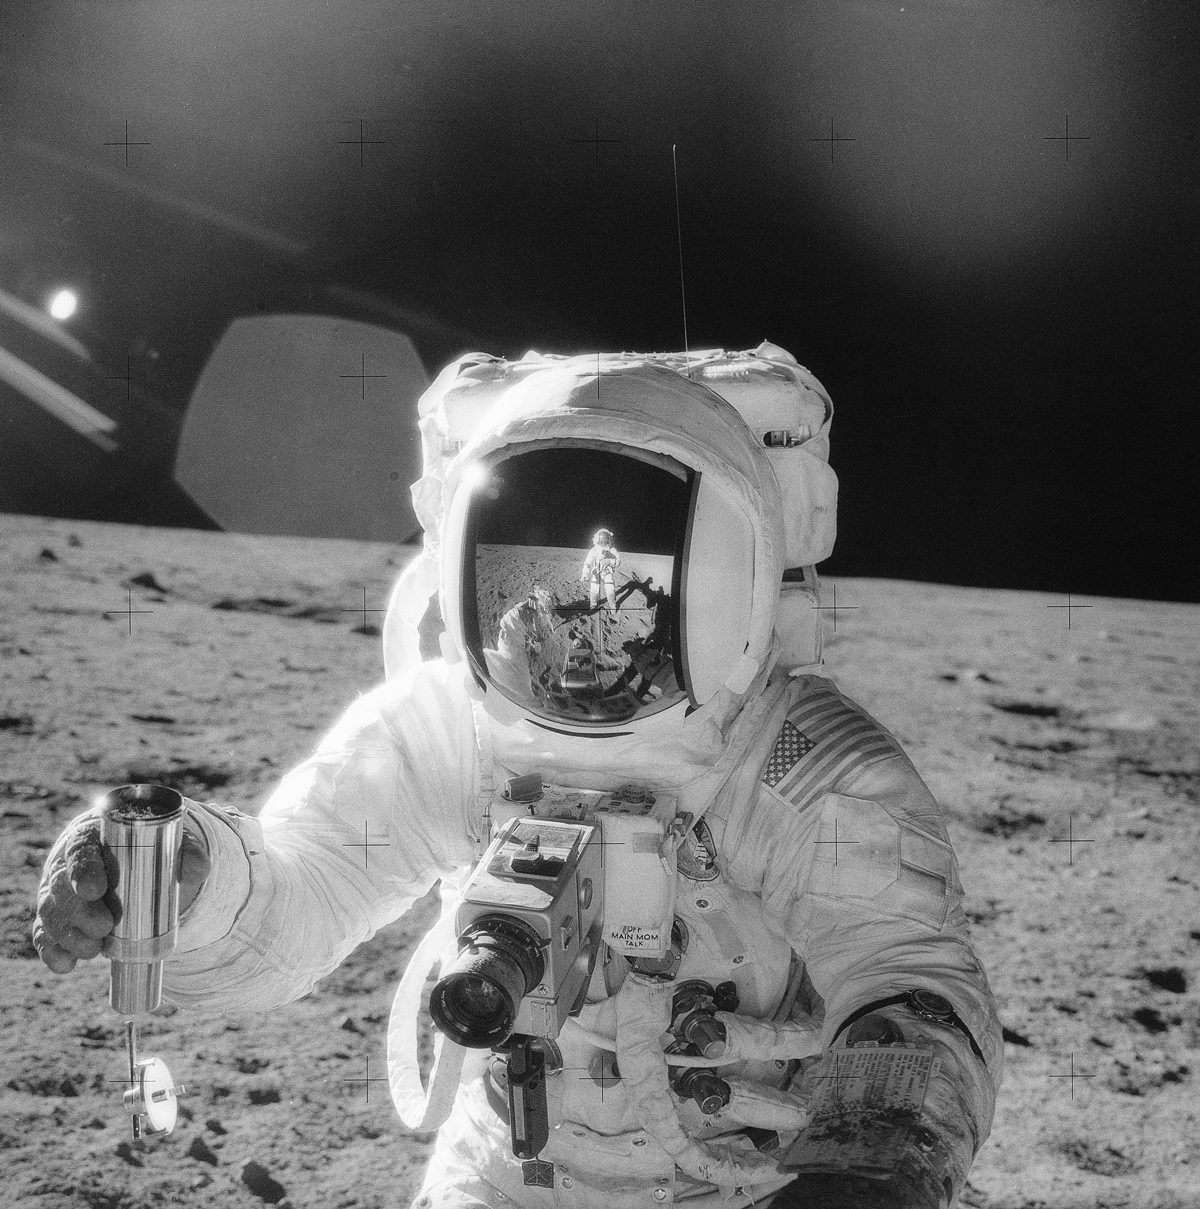 Astronaut collecting rock samples on the moon